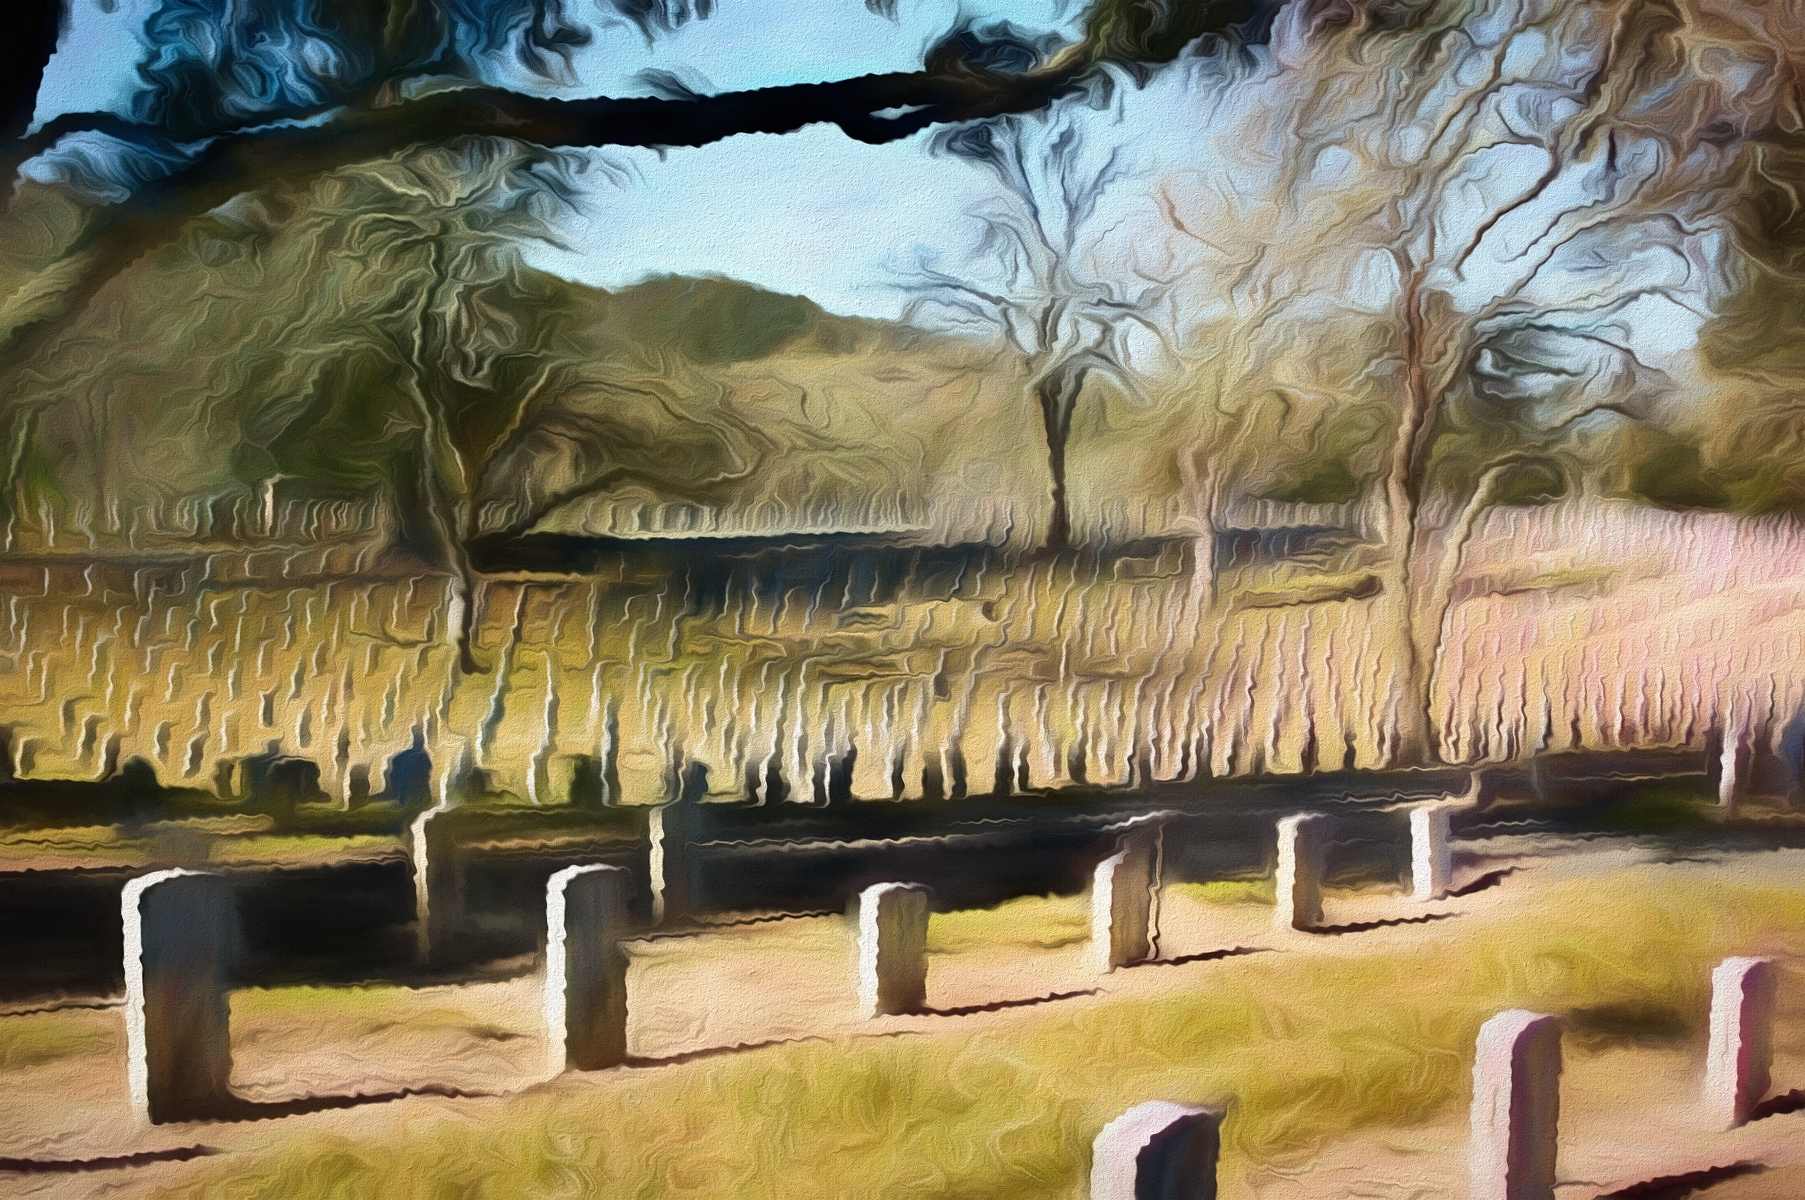 'Impression of vast Veteran's Cemetery at Yountville, California' (CA 1 Place) by Richard Finn - LV